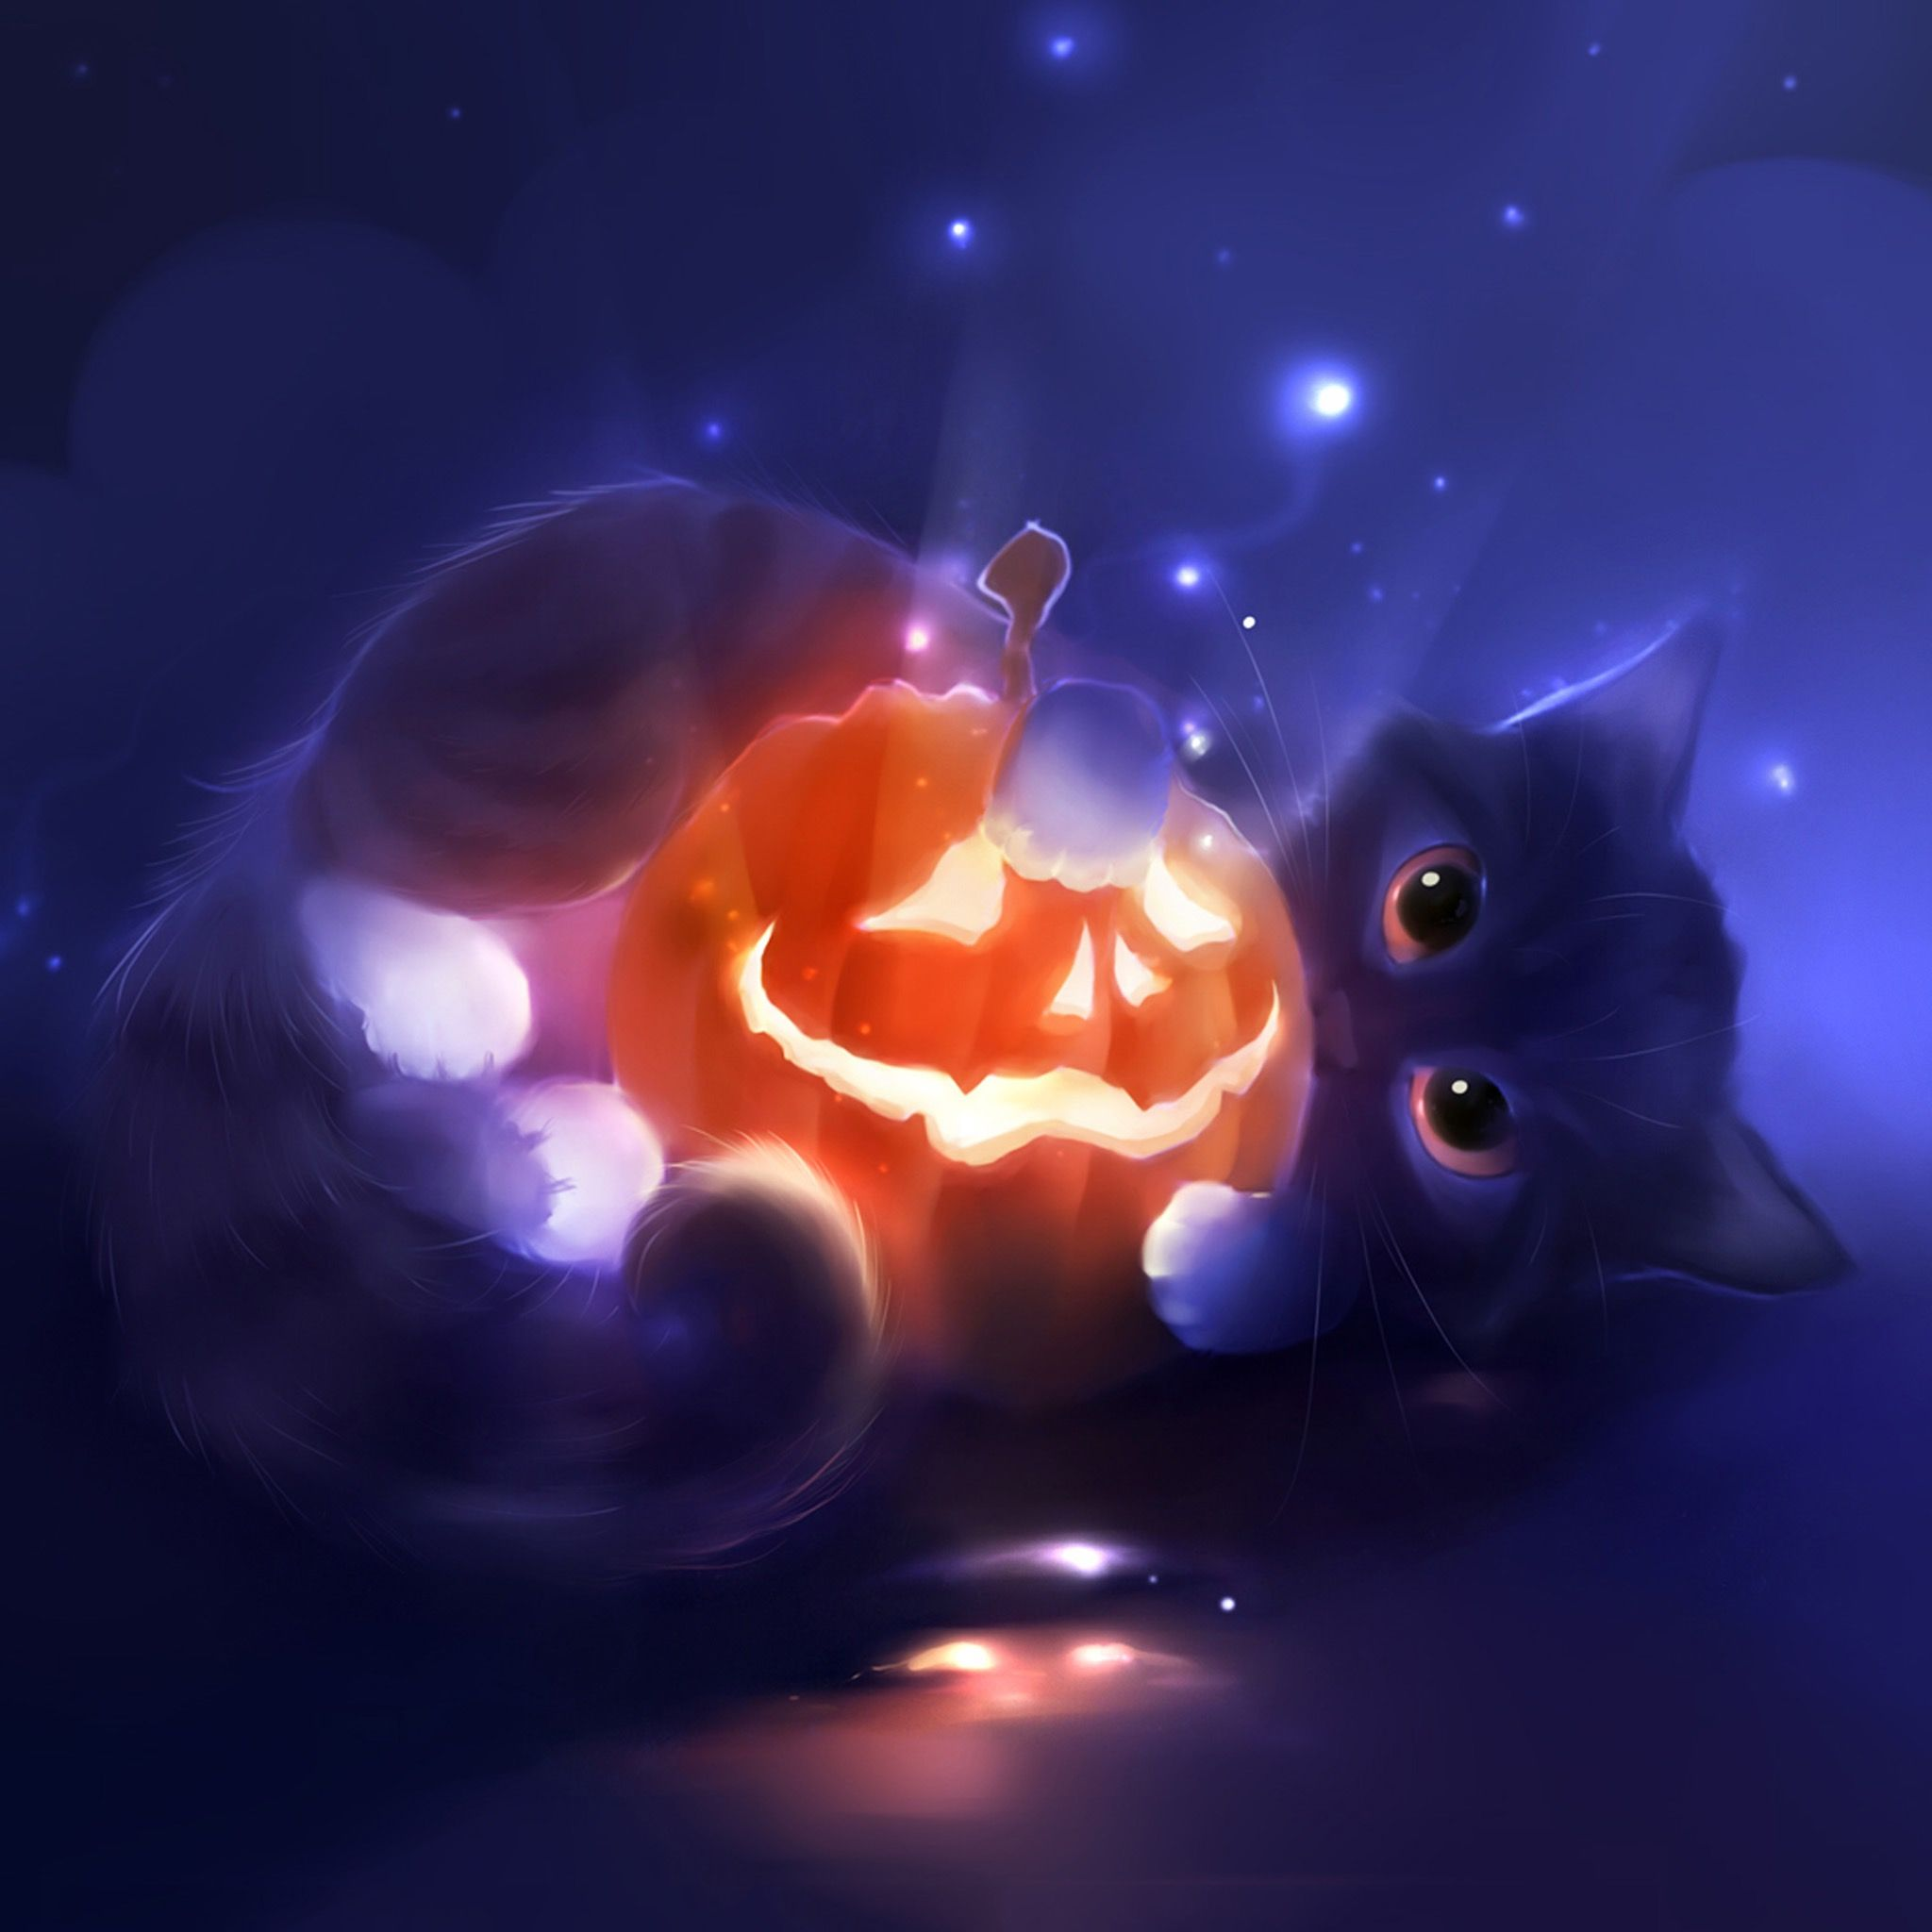 Pin By Dawn James Woodford On Wallpaper Themes Halloween Wallpaper Halloween Cat Cute Art